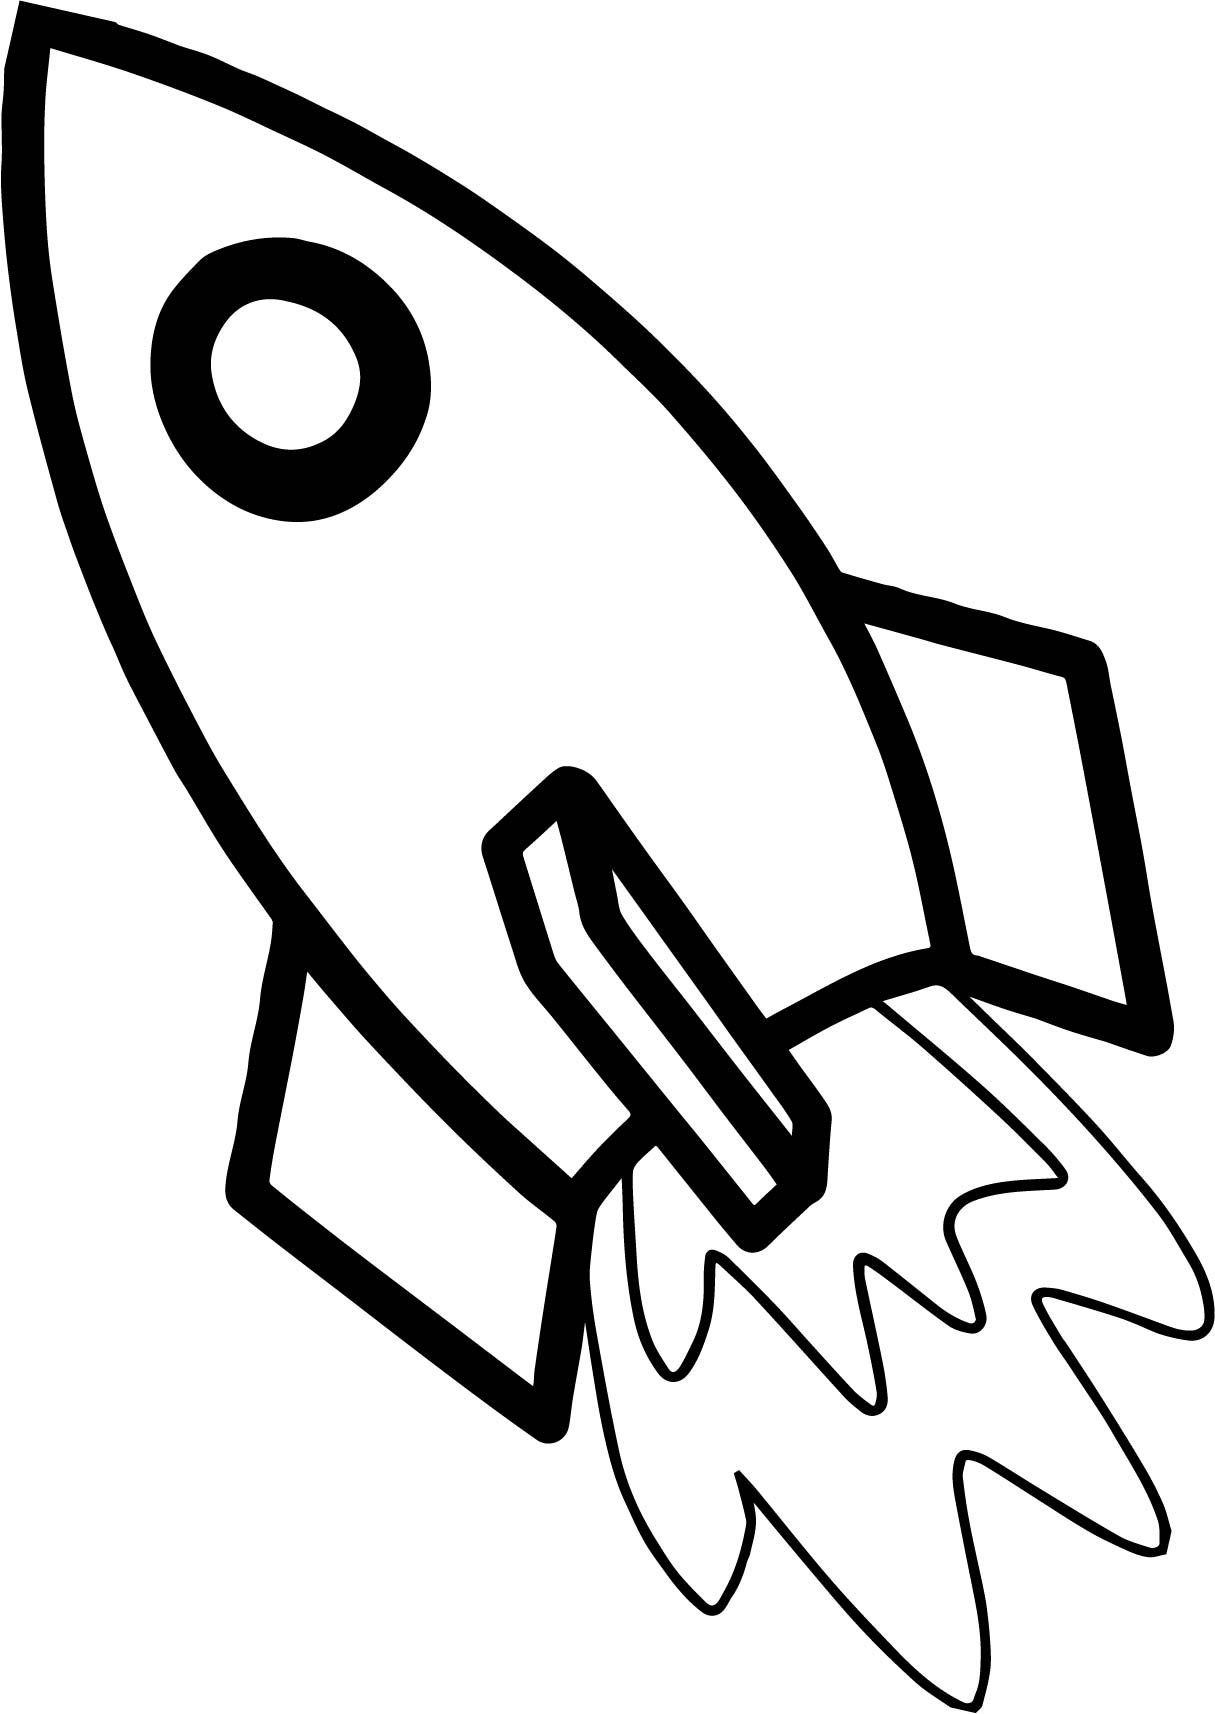 Uncategorized Rocket Coloring Sheets astronaut rocket coloring page wecoloringpage page